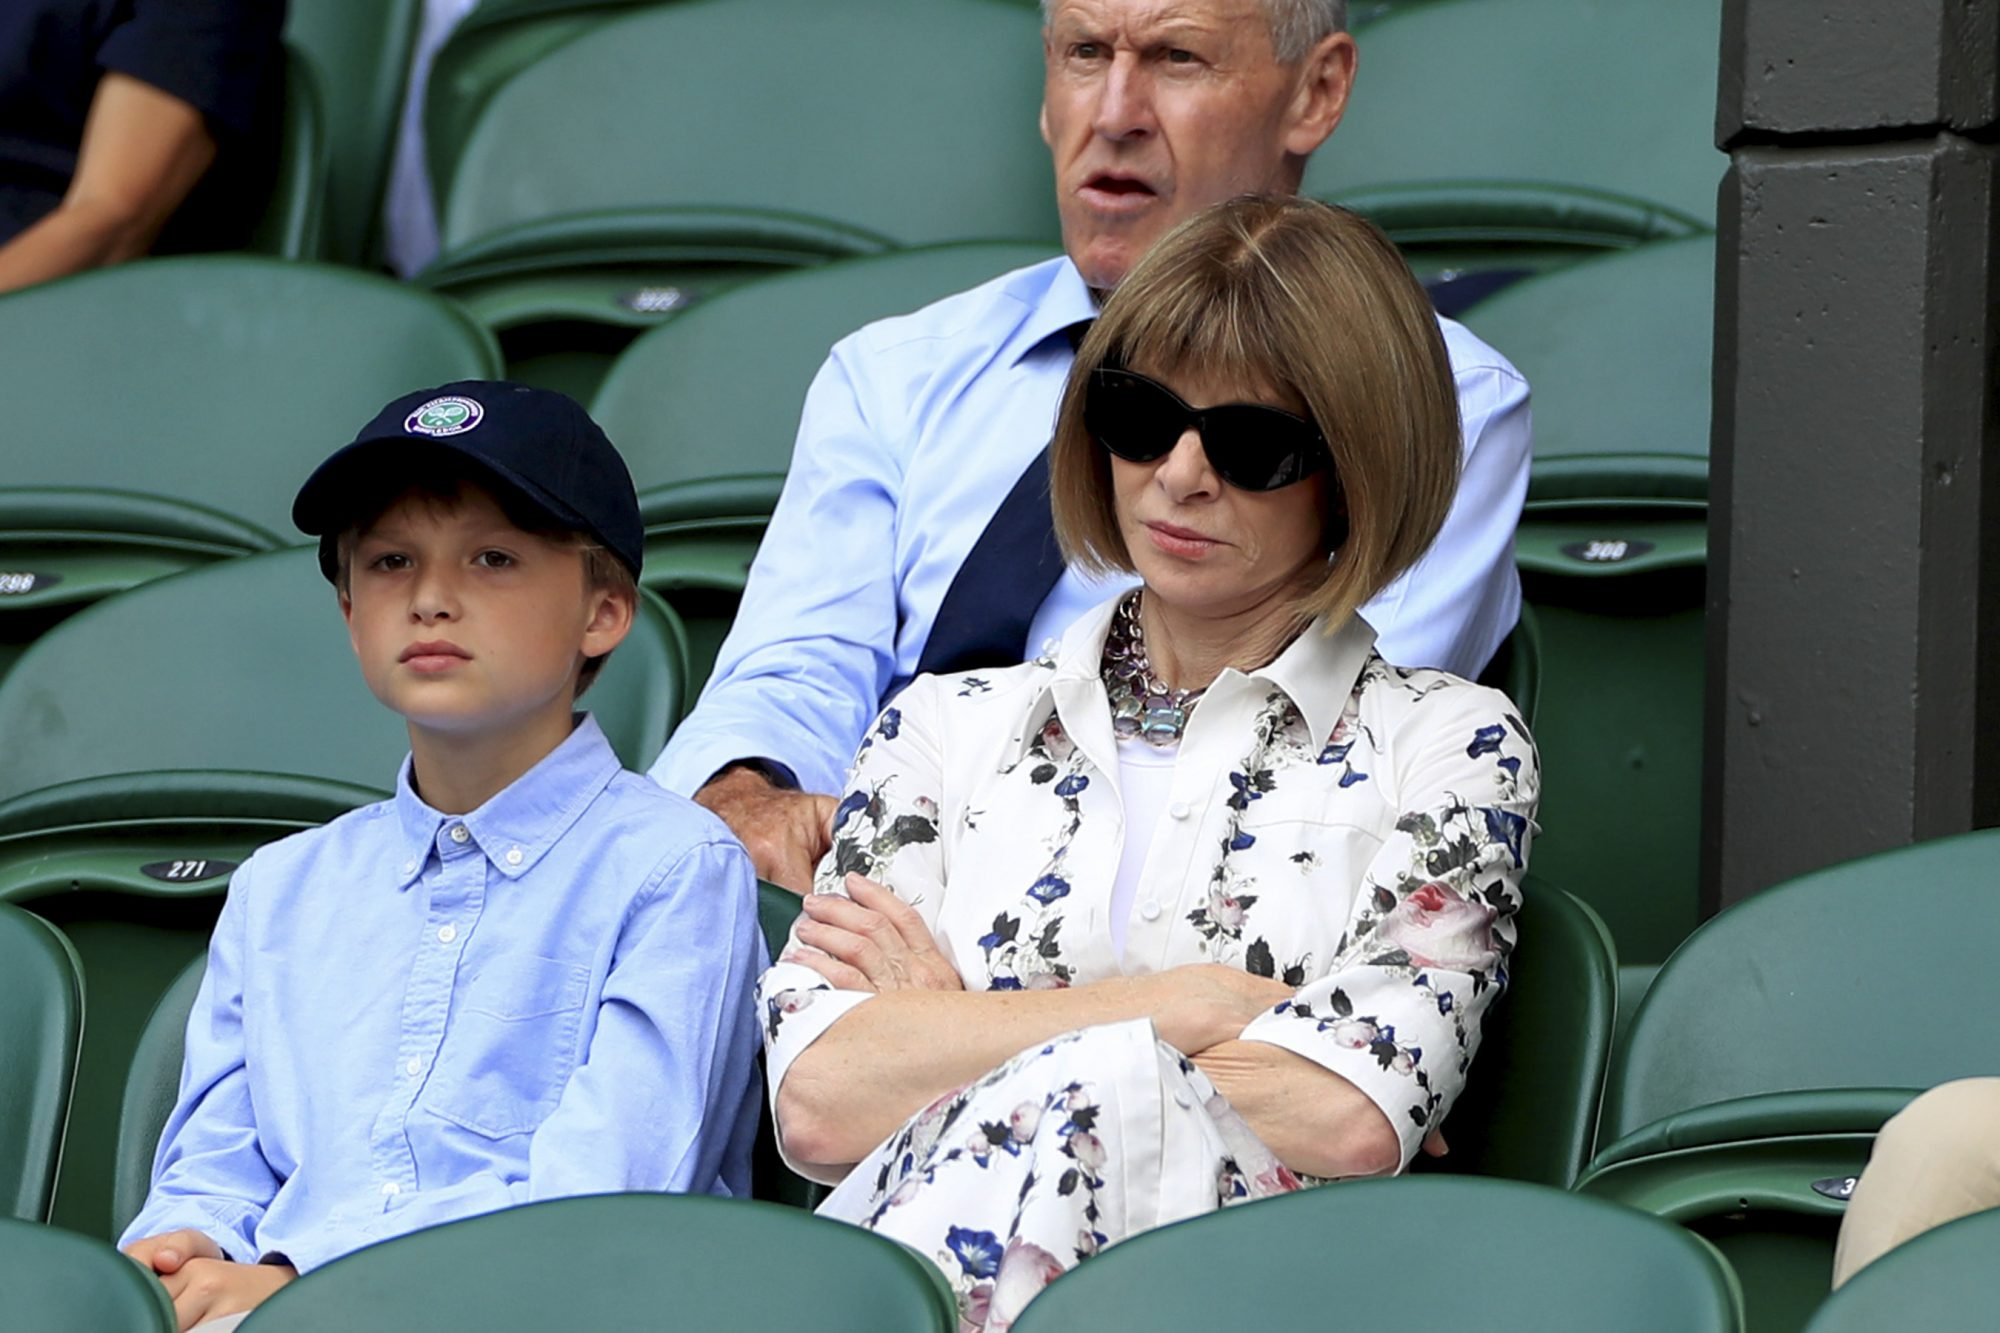 American Vogue, Editor in Chief, Anna Wintour on day nine of the Wimbledon Championships at the All England Lawn Tennis and Croquet Club, Wimbledon. (Photo by Mike Egerton/PA Images via Getty Images)